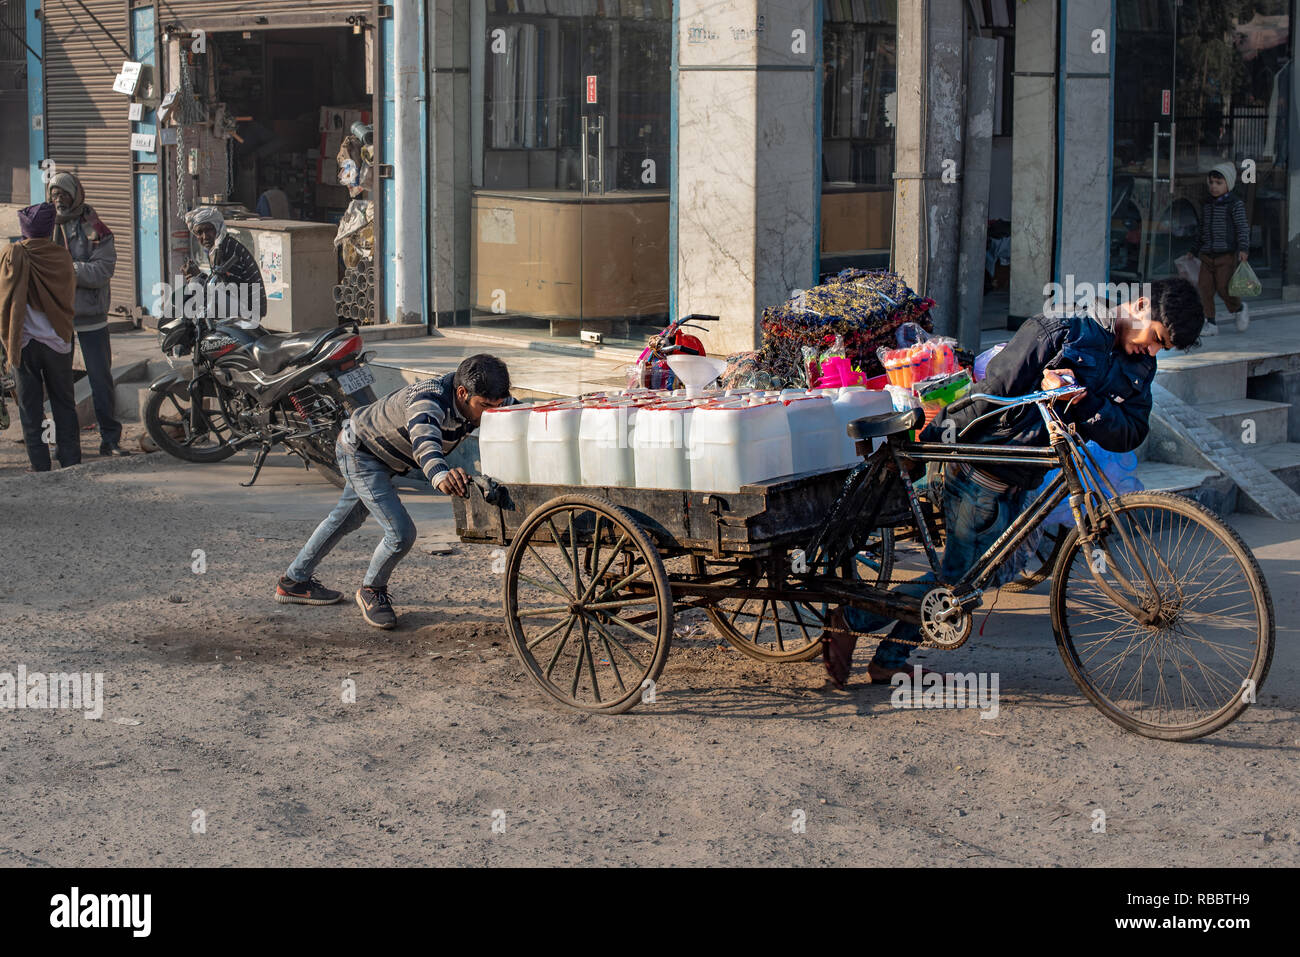 Sharing the burden: Supplying vital drinking water to Khadar's residents in an arduous job (in JJ Colony, Madanpur Khadar, New Delhi) - Stock Image